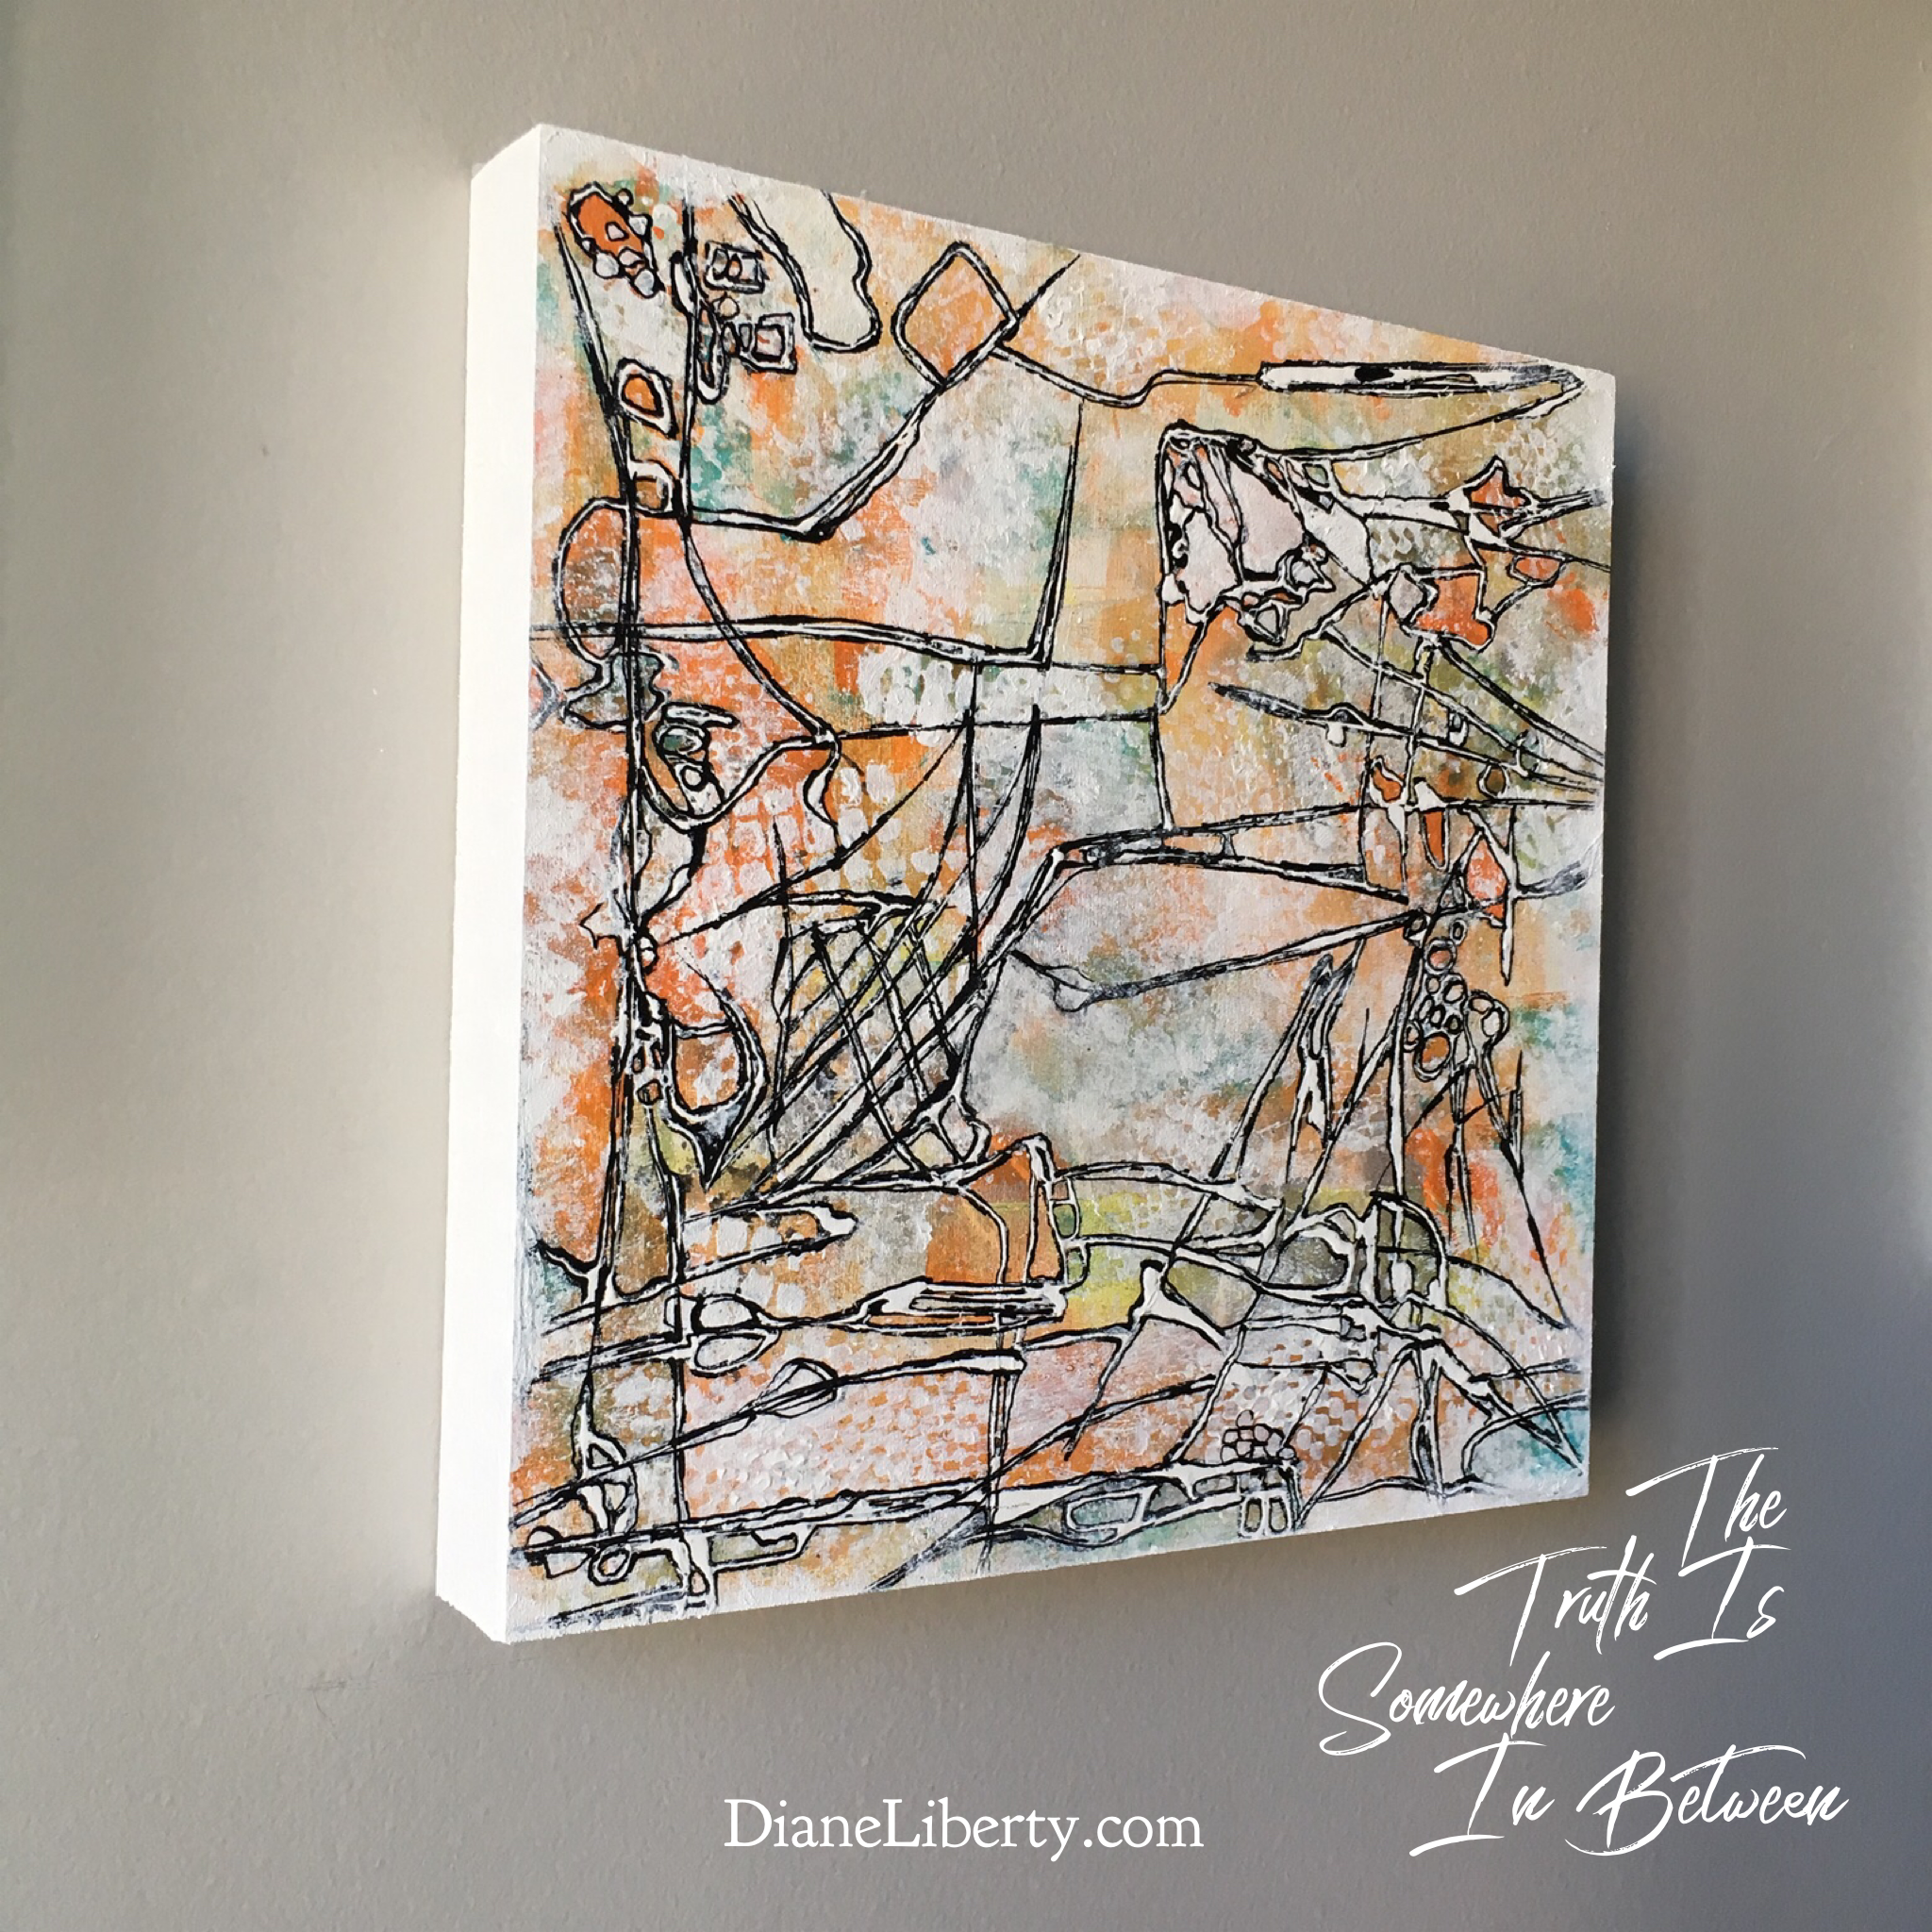 Copyright ©2019 Diane Liberty. All rights reserved